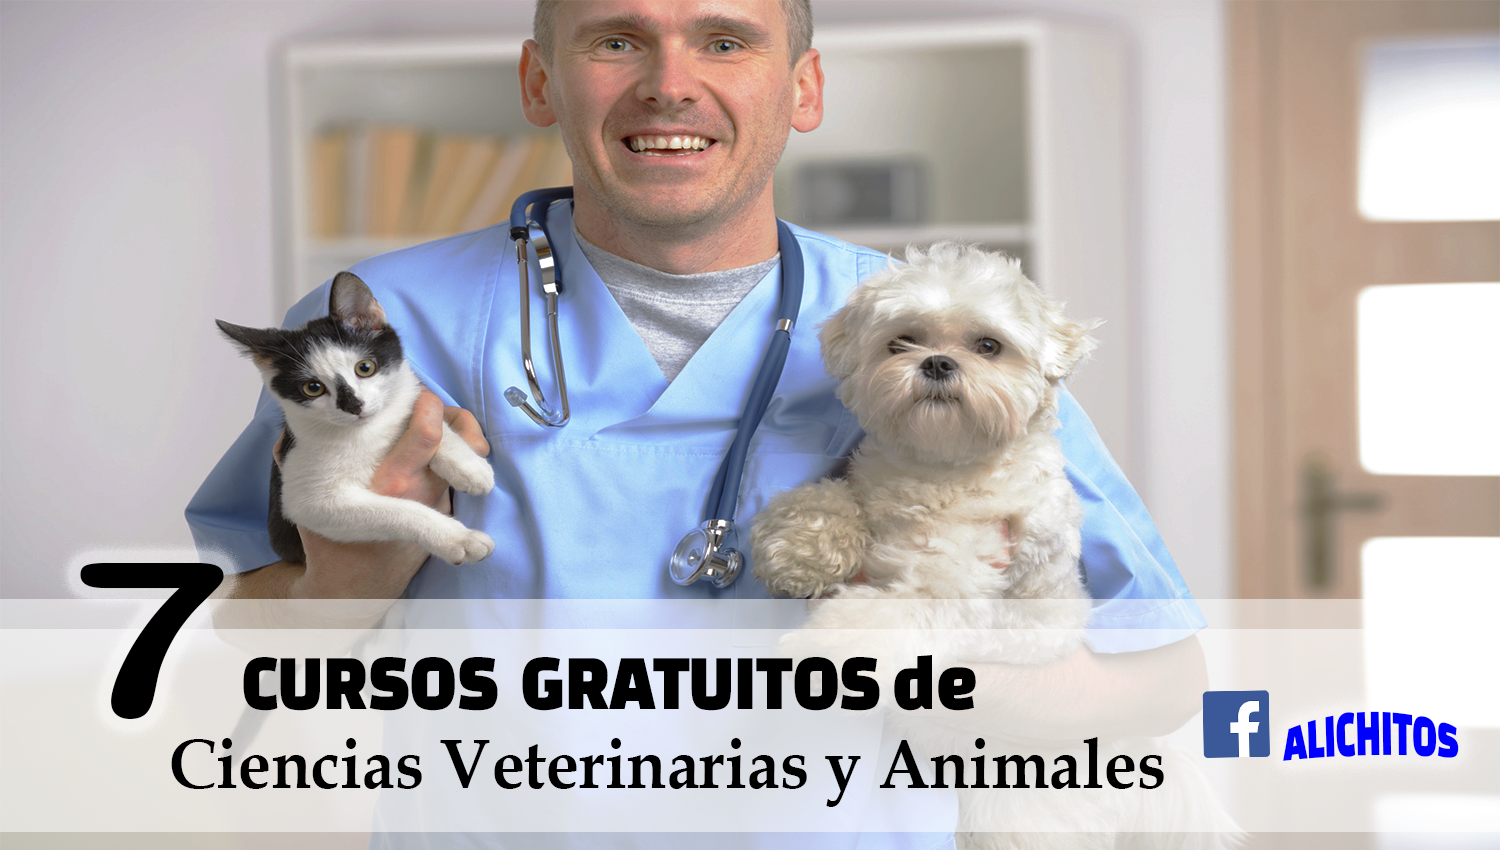 Libros Veterinaria Gratis Cursos Gratuitos De Medicina Veterinaria Alichitos